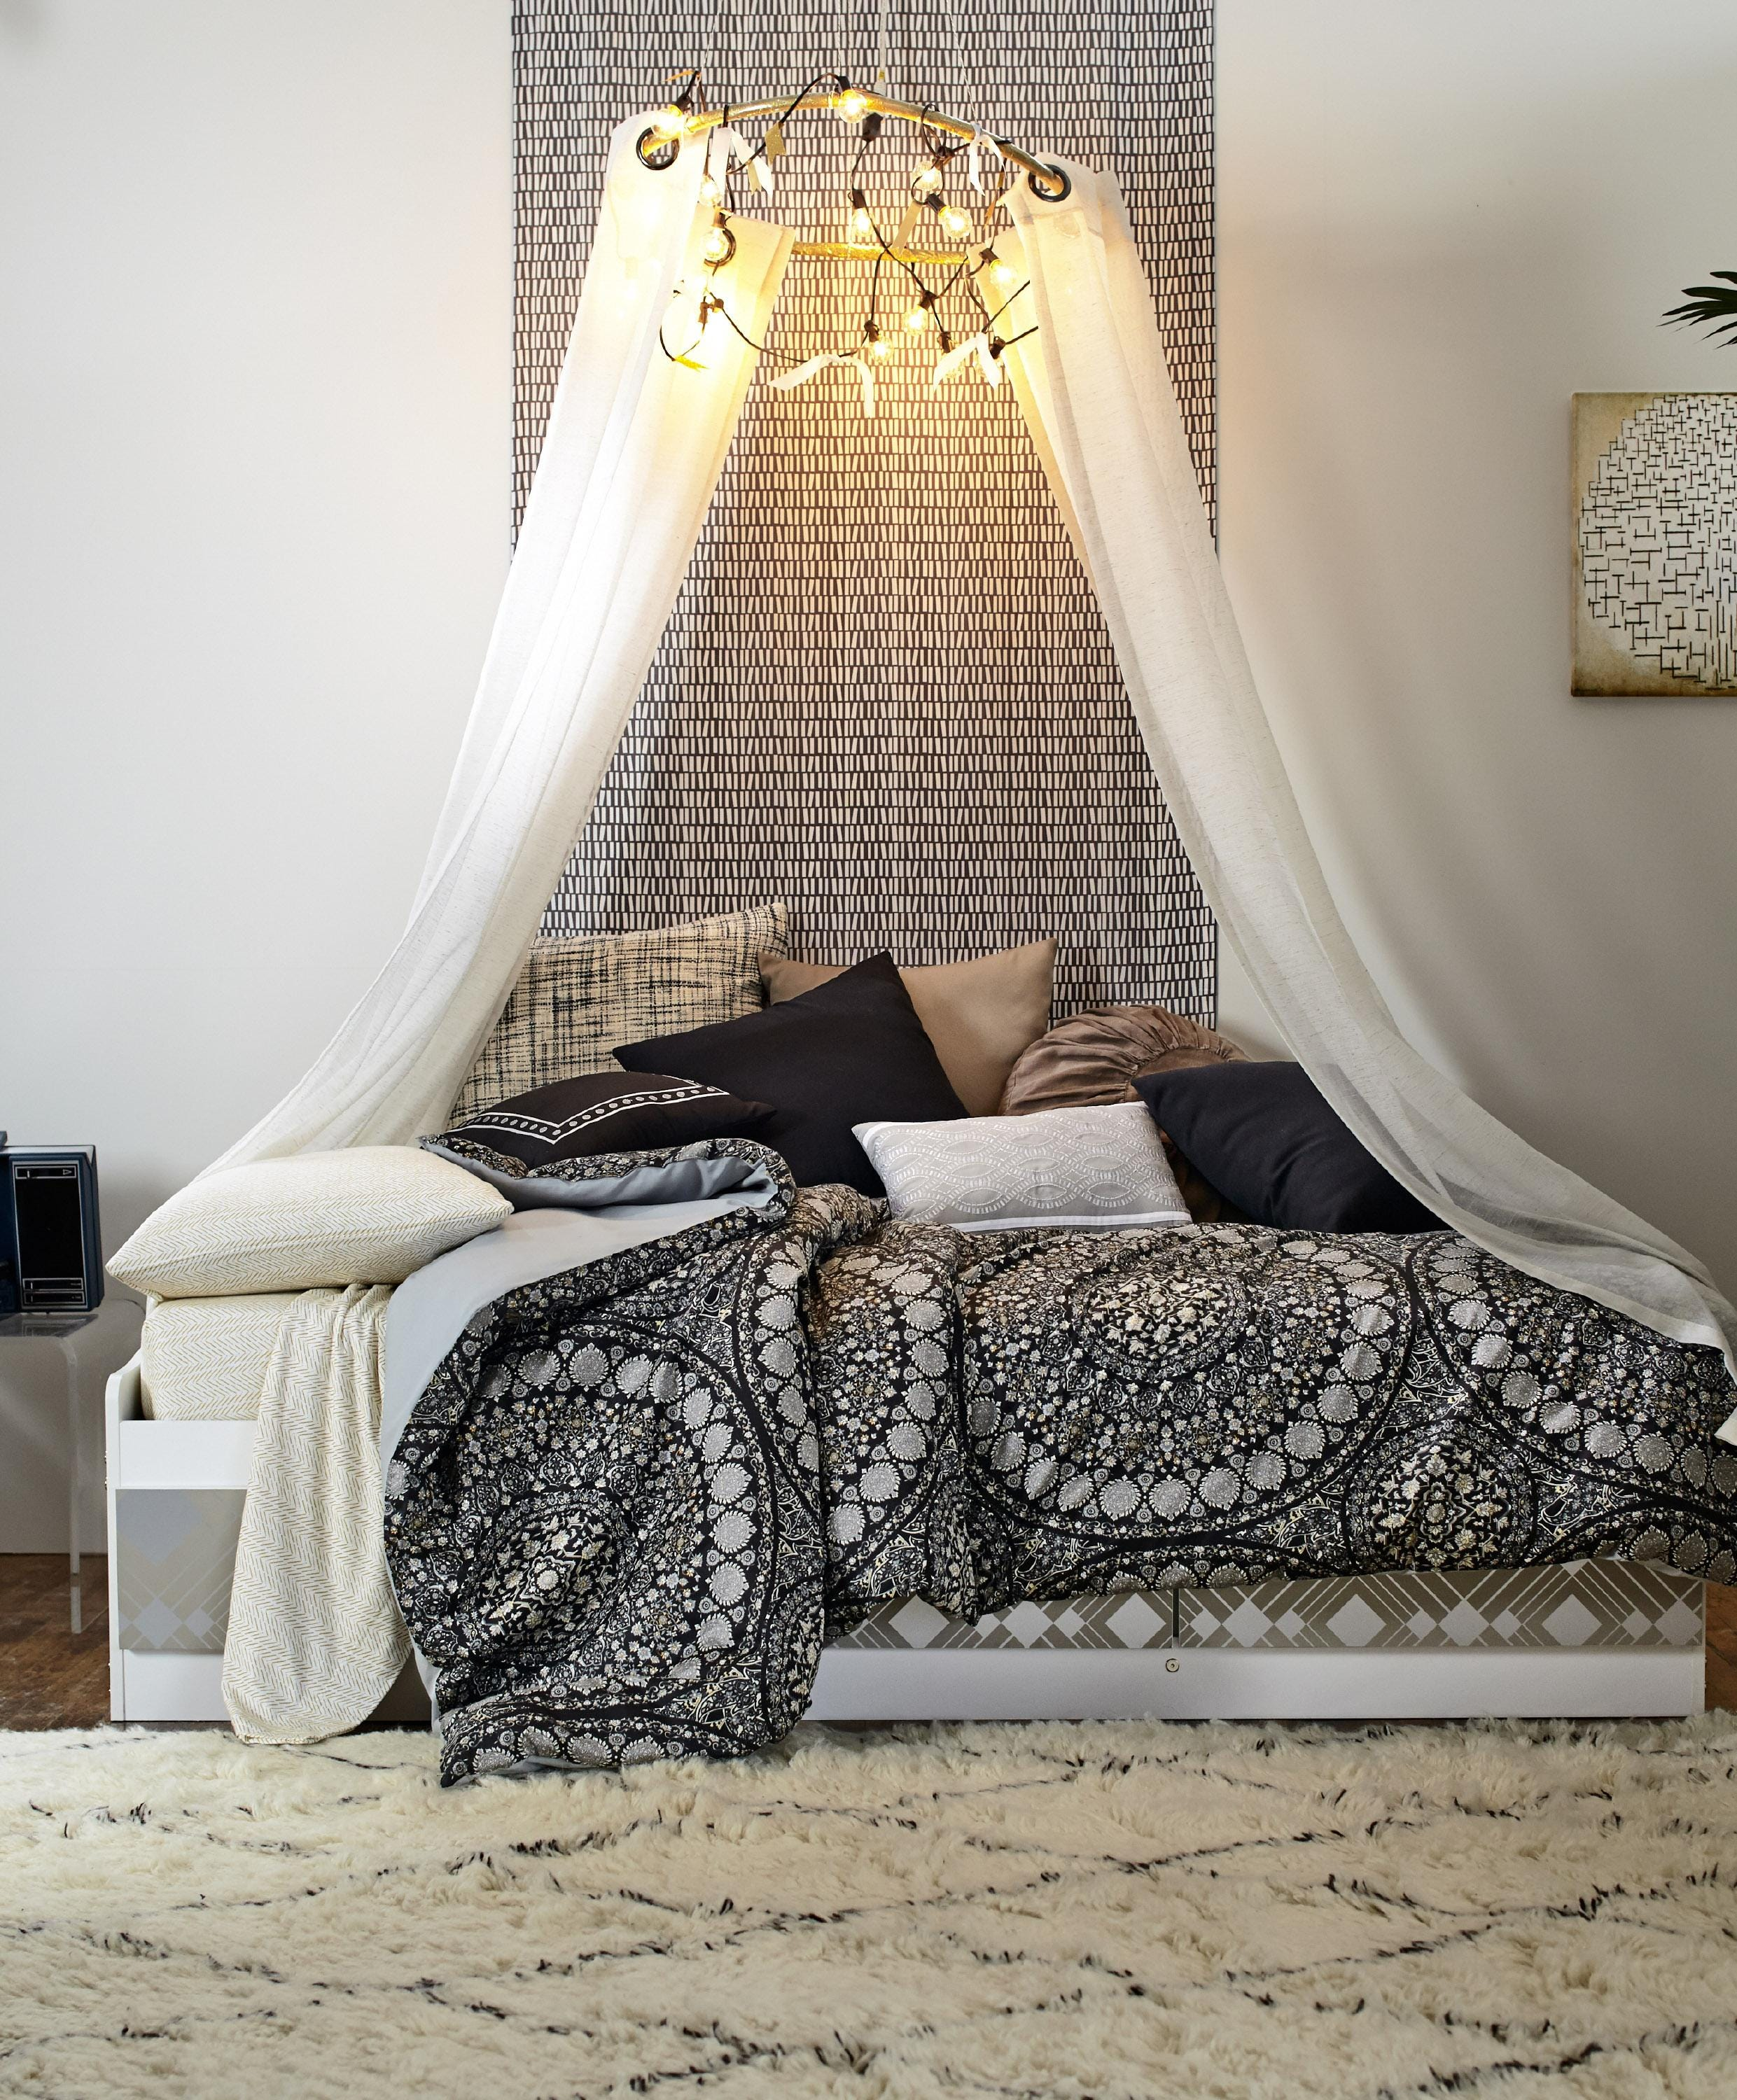 & DIY dorm redo: canopy chandelier other simple projects